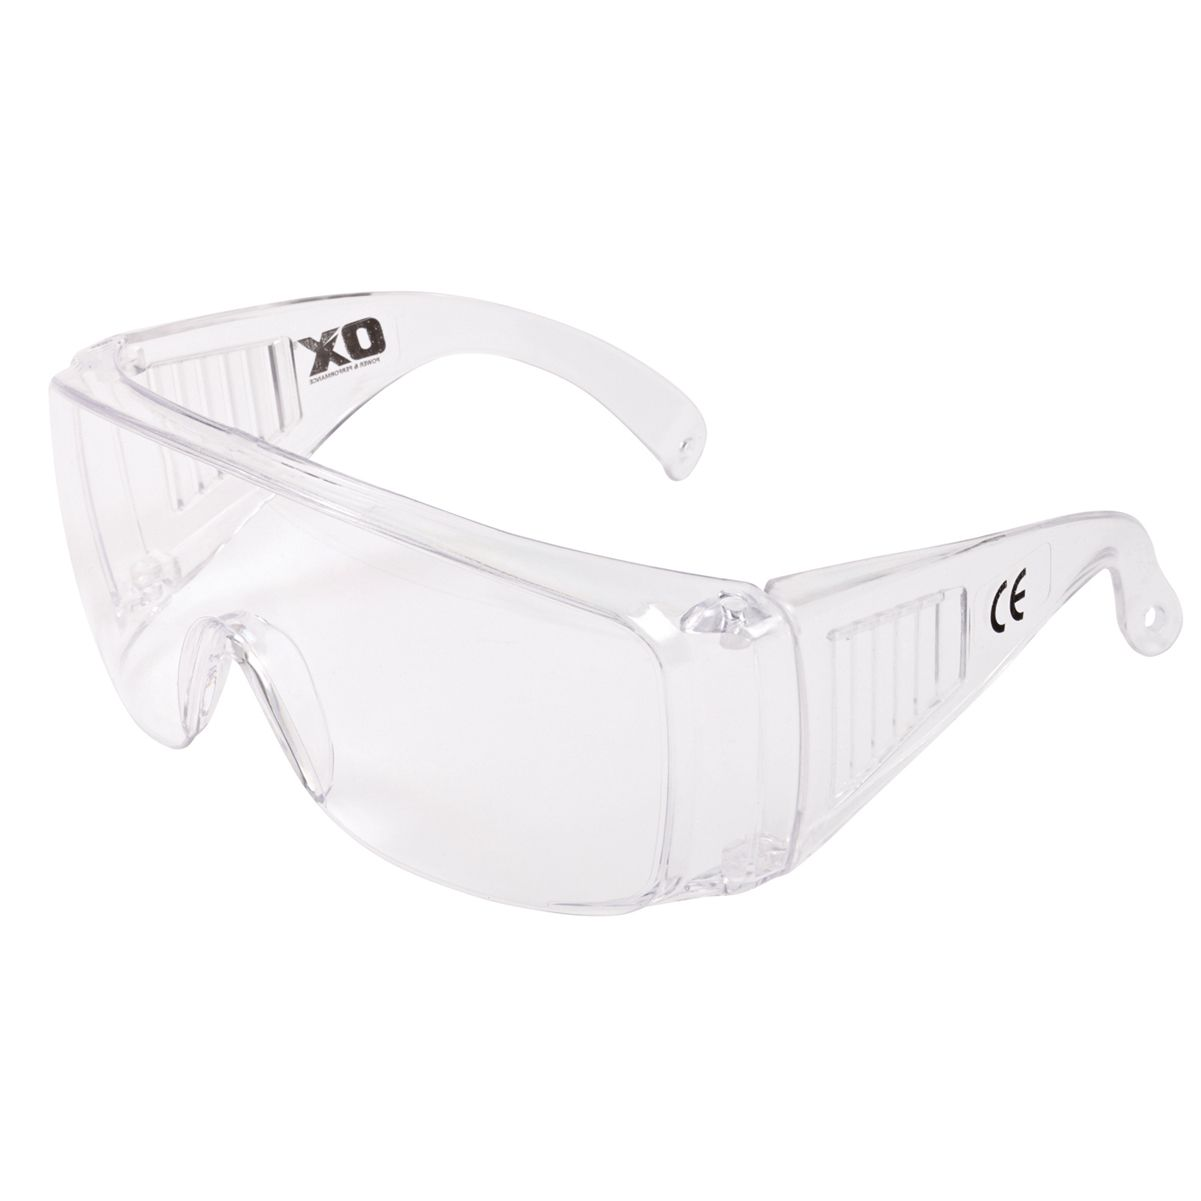 Ox Saefty Visitor Safety Spectacles Clear